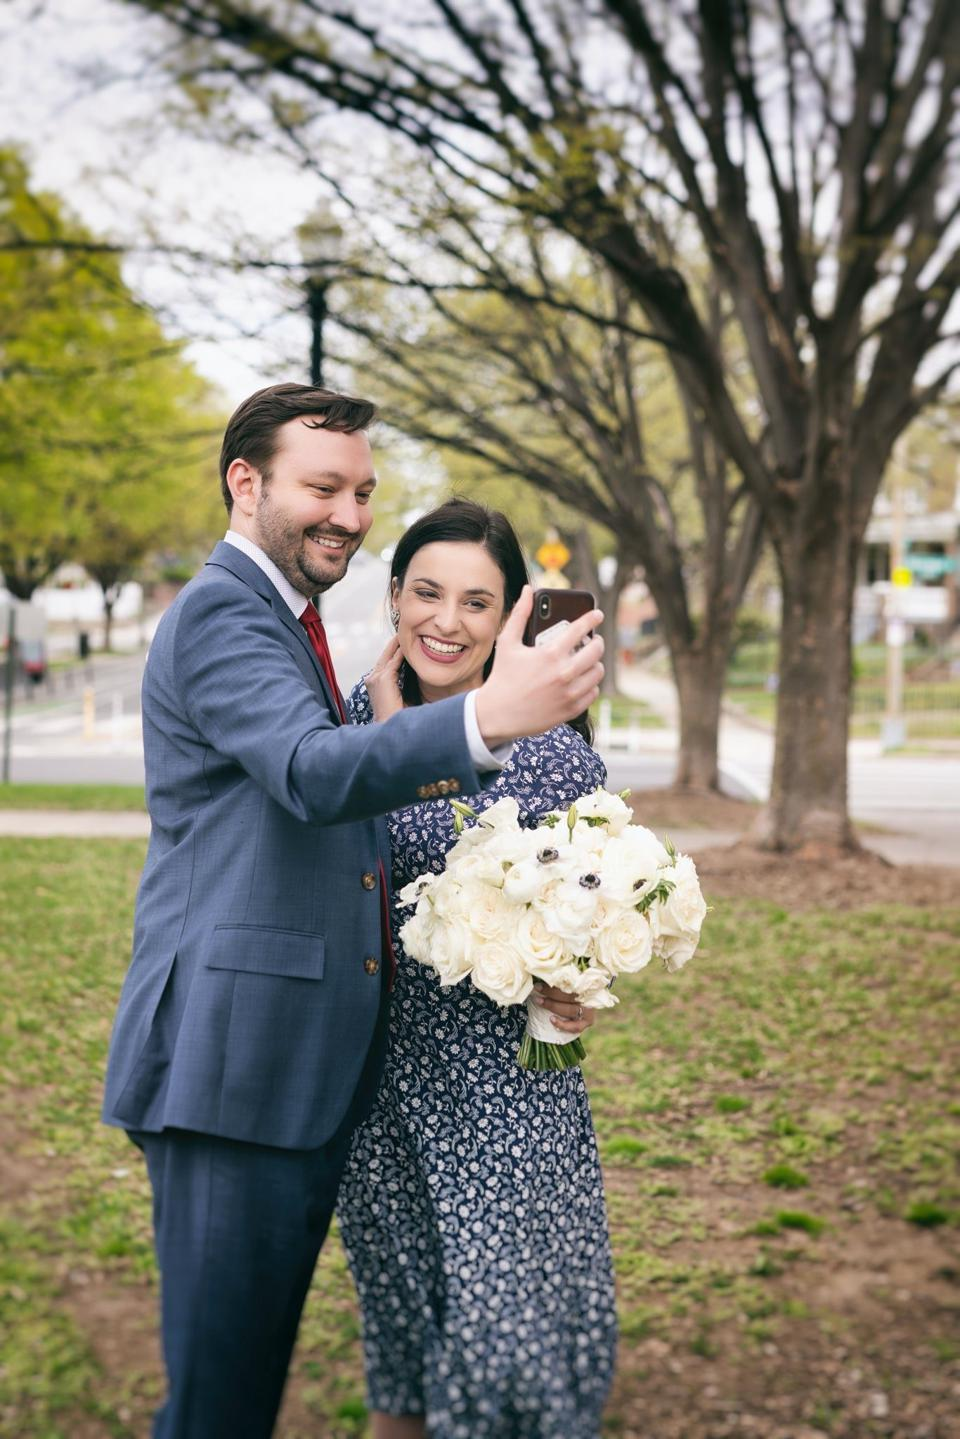 Weddings In The Age Of Coronavirus: Couples FaceTime With Rabbi, Avatar Nuptials And More